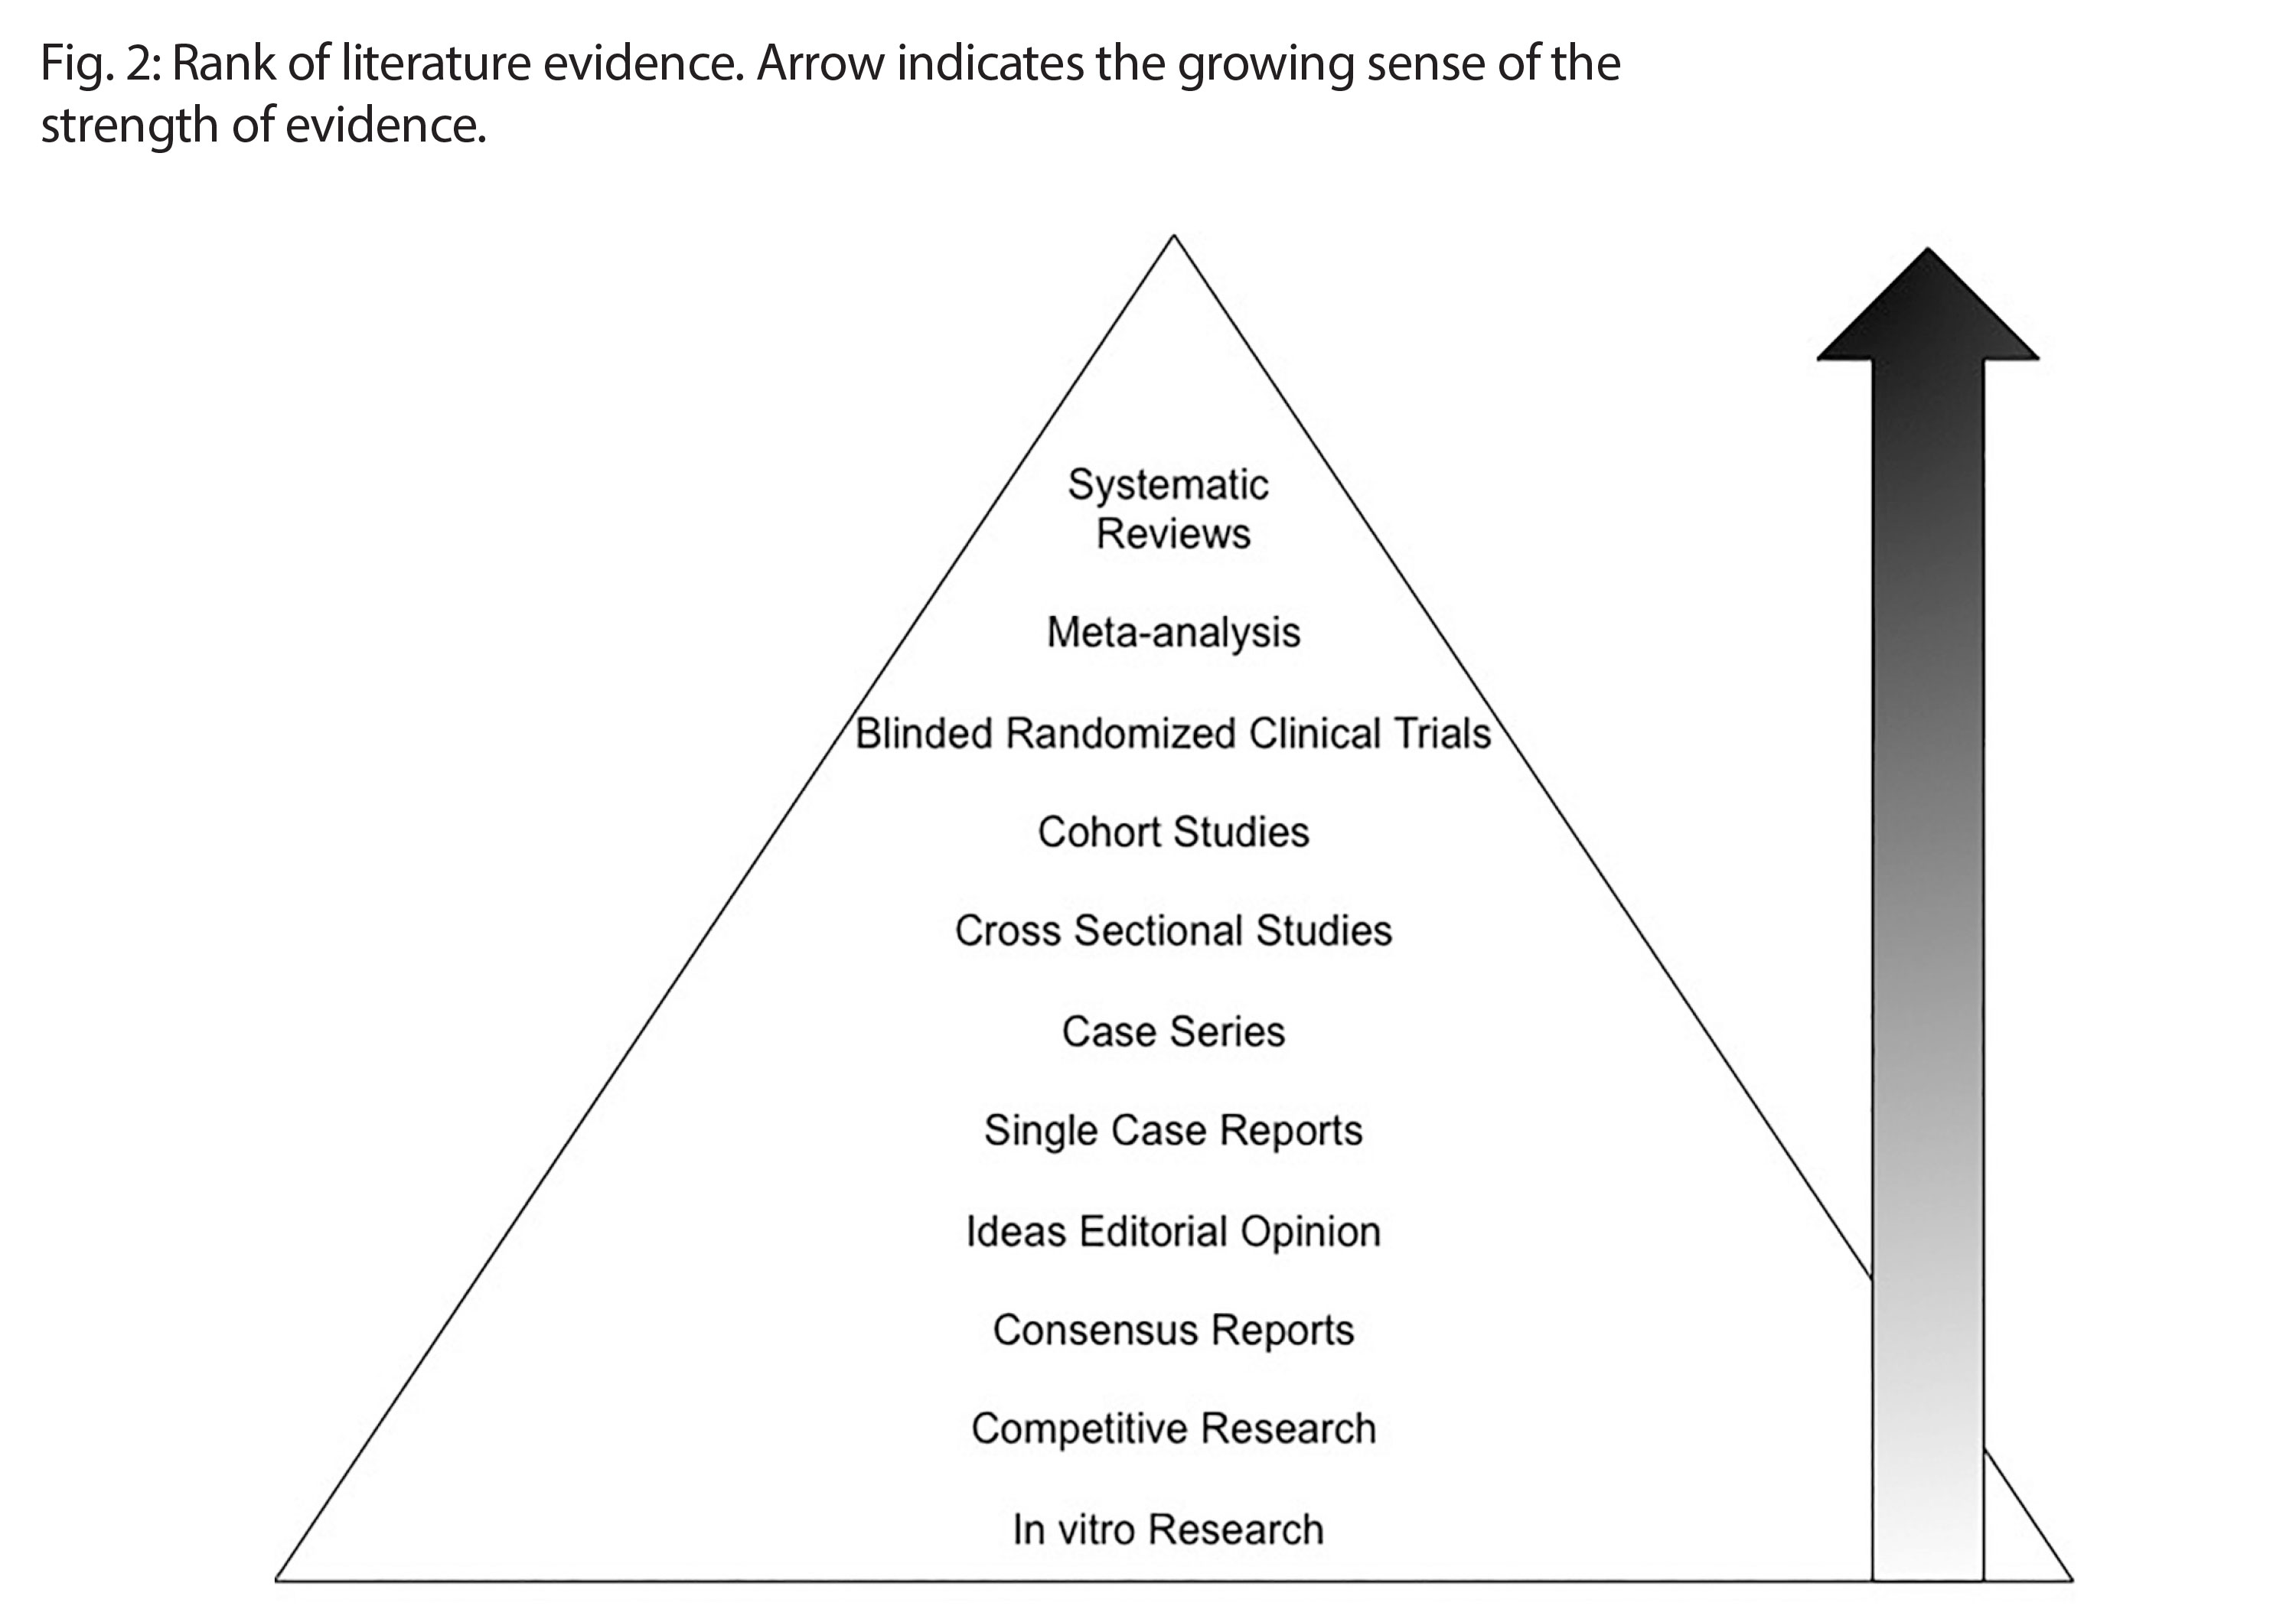 Rank of literature evidence. Arrow indicates the growing sense of the strength of evidence